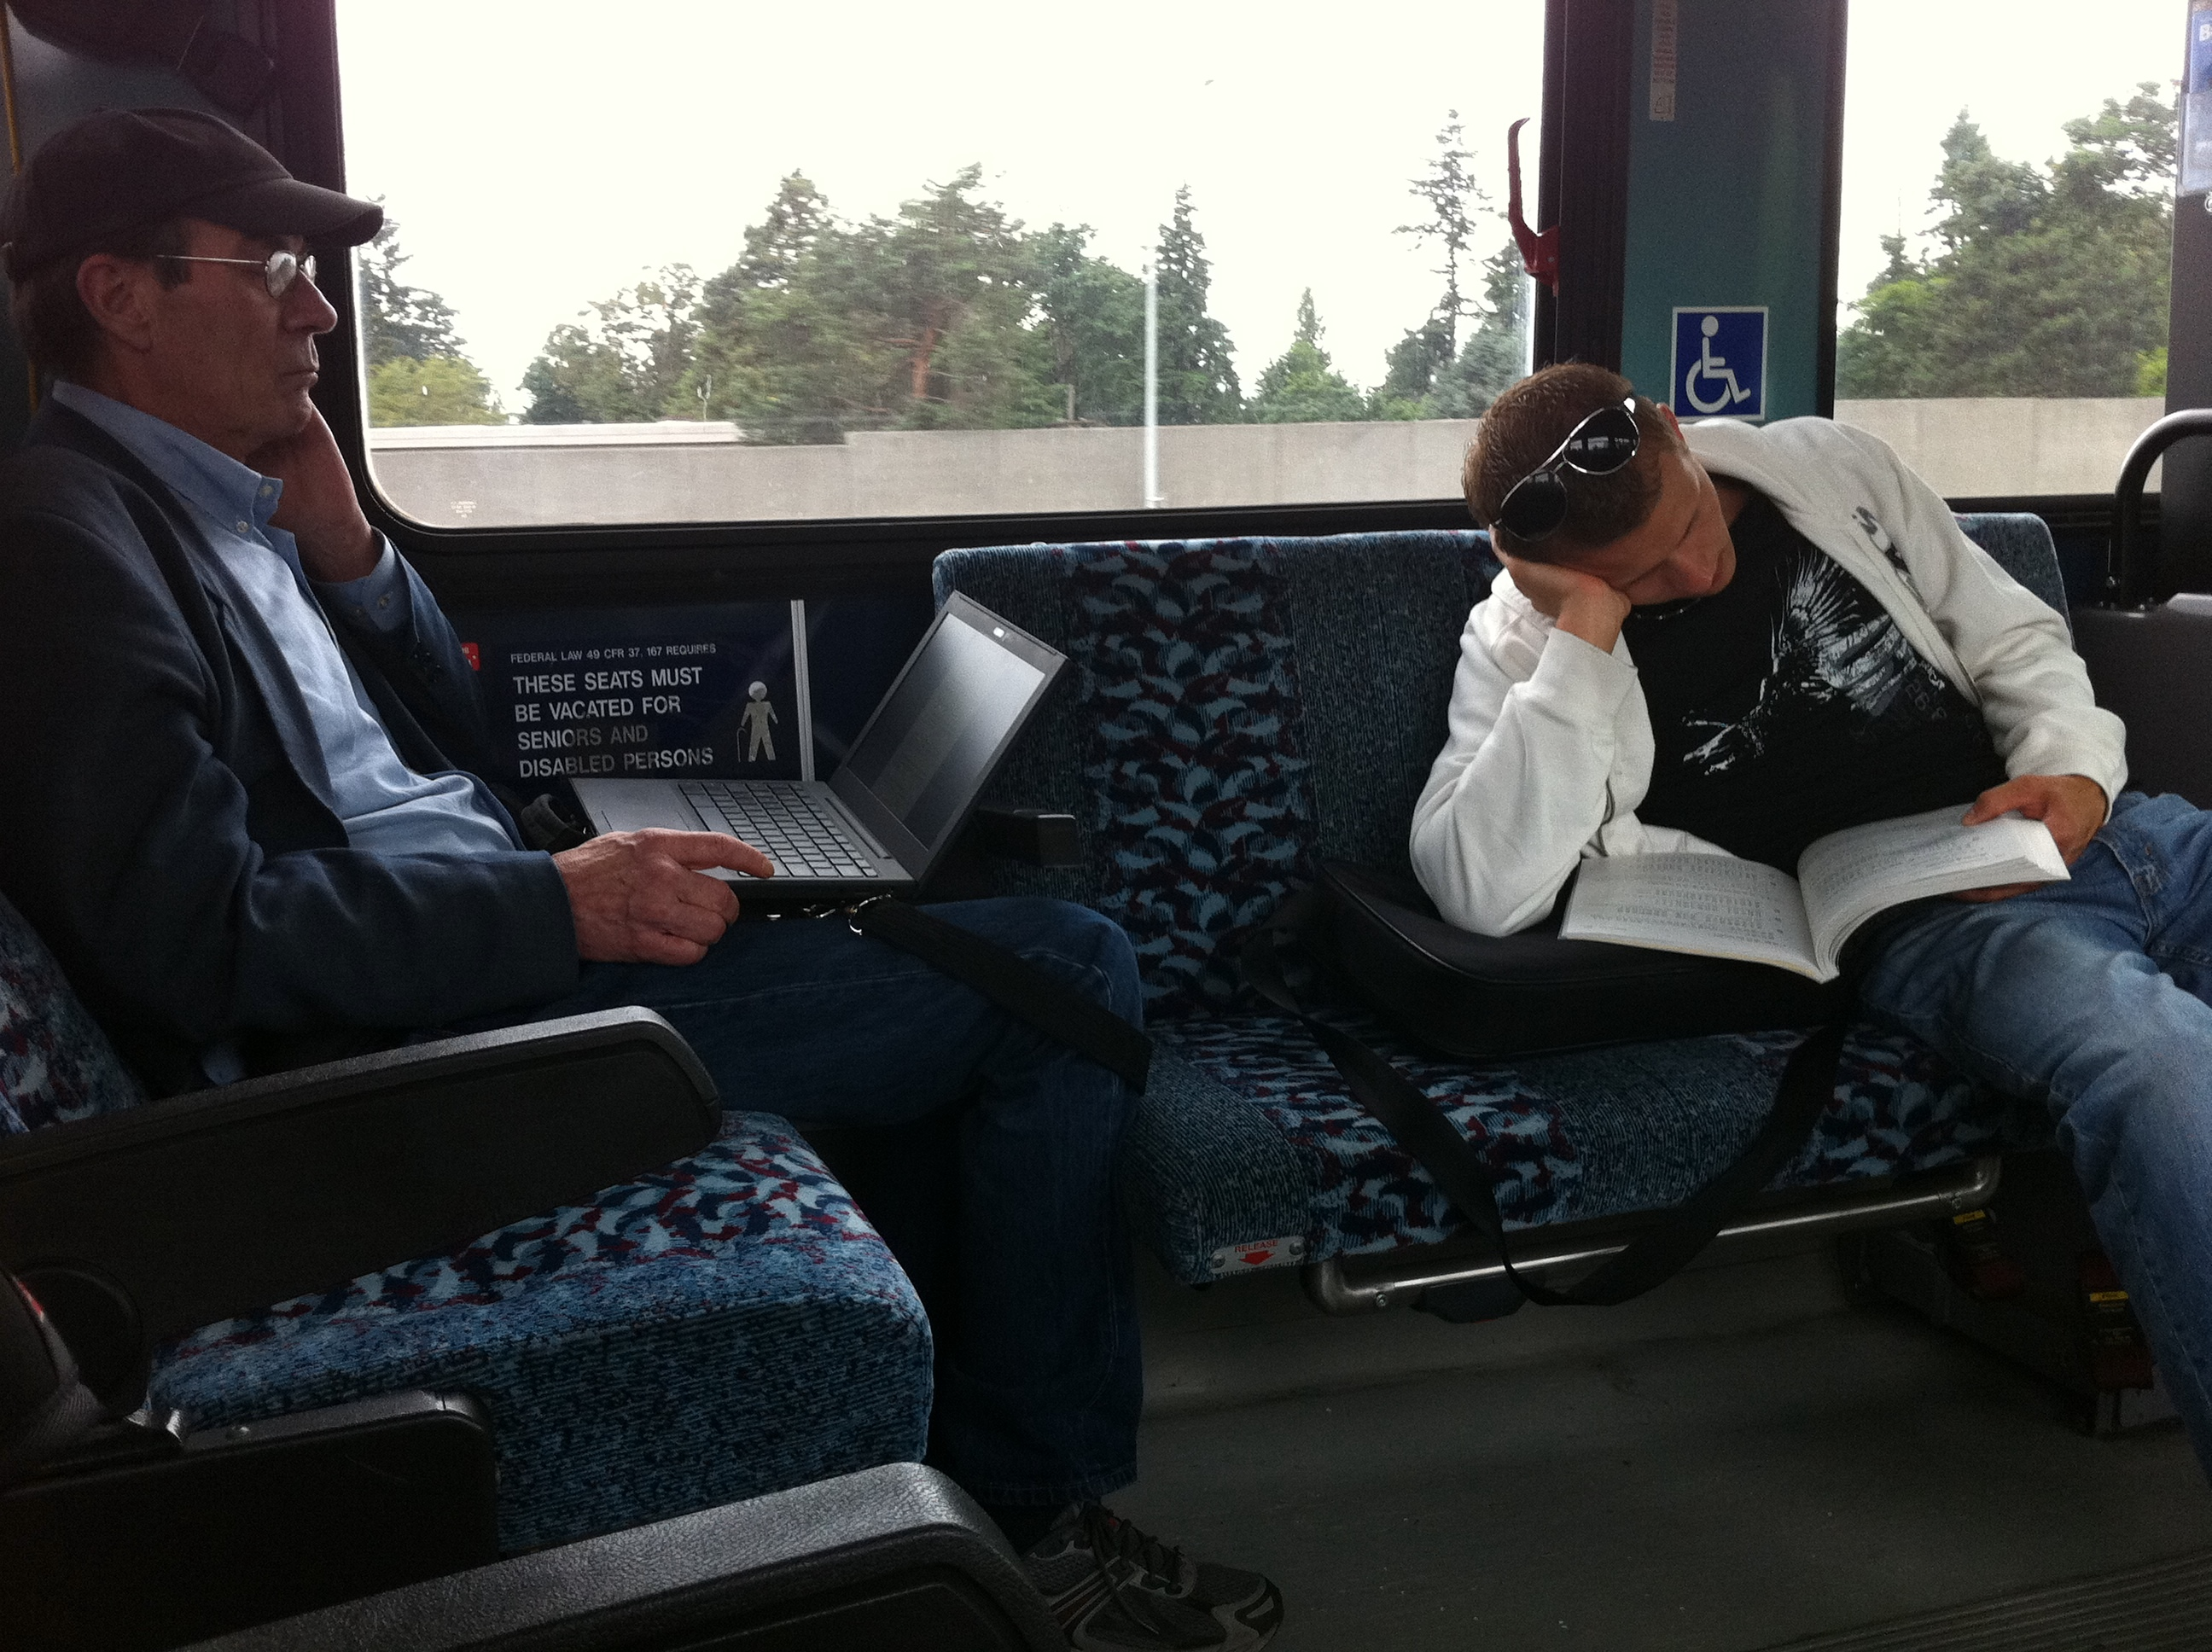 two men reading on the bus